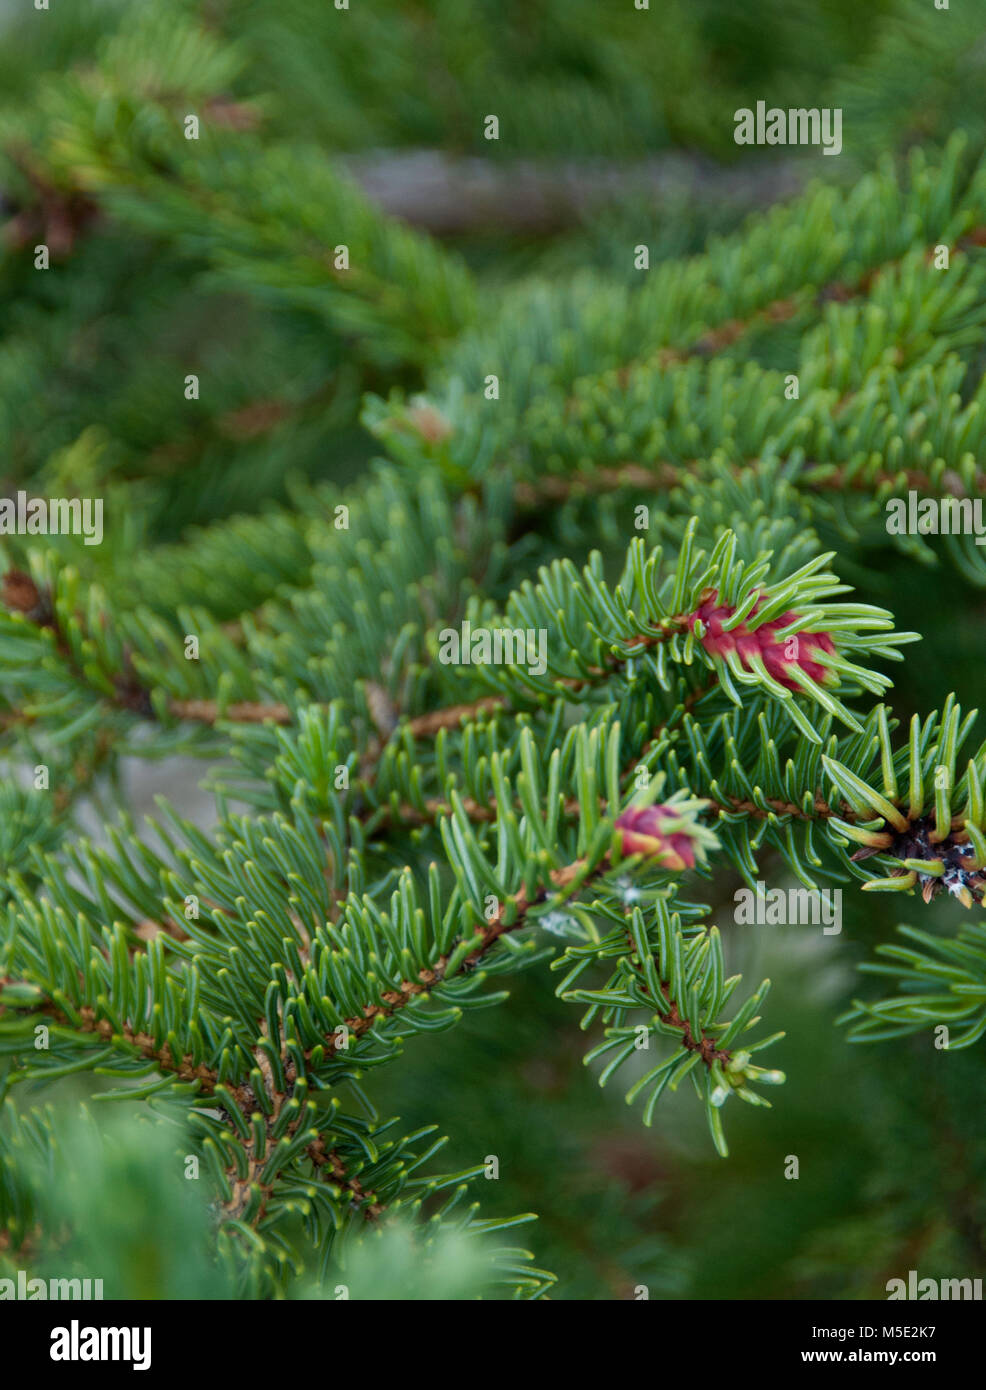 Conifer branch,  	Picea abies,  Norway Spruce 'Acrocona', Acrocona Norway Spruce, Red Cone - Stock Image